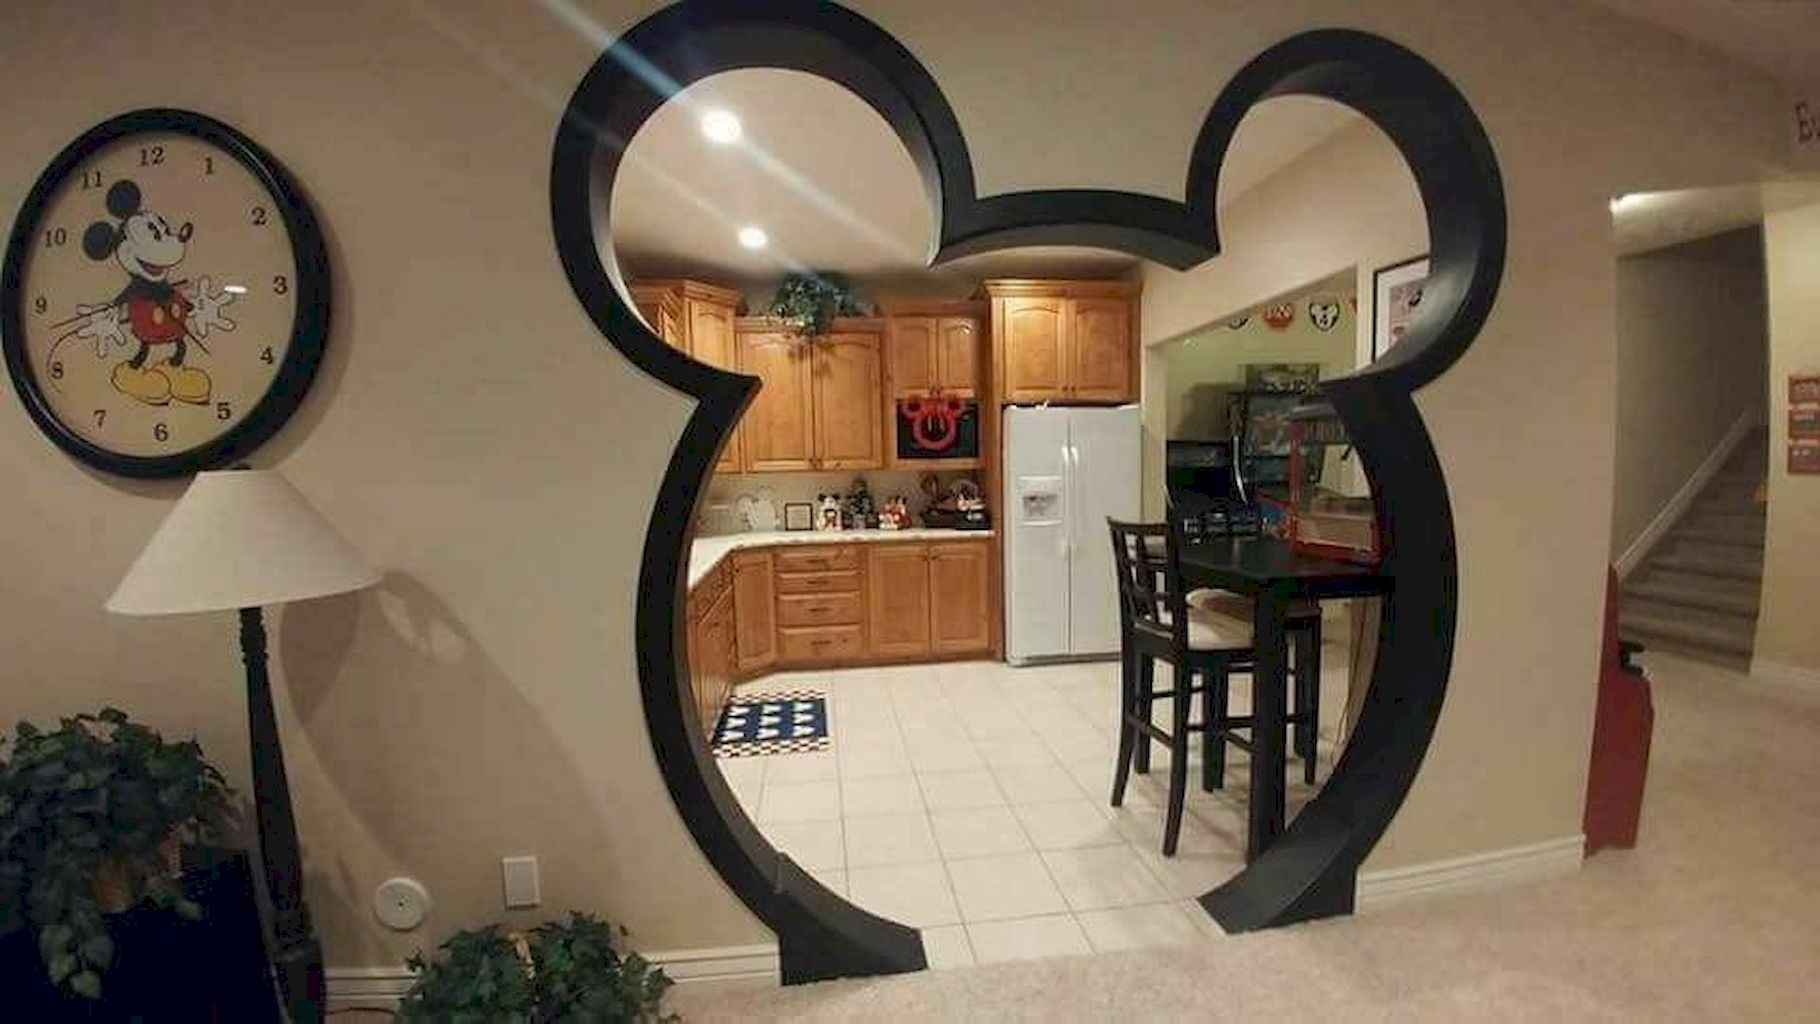 20 diy disney apartment decorations ideas (15)